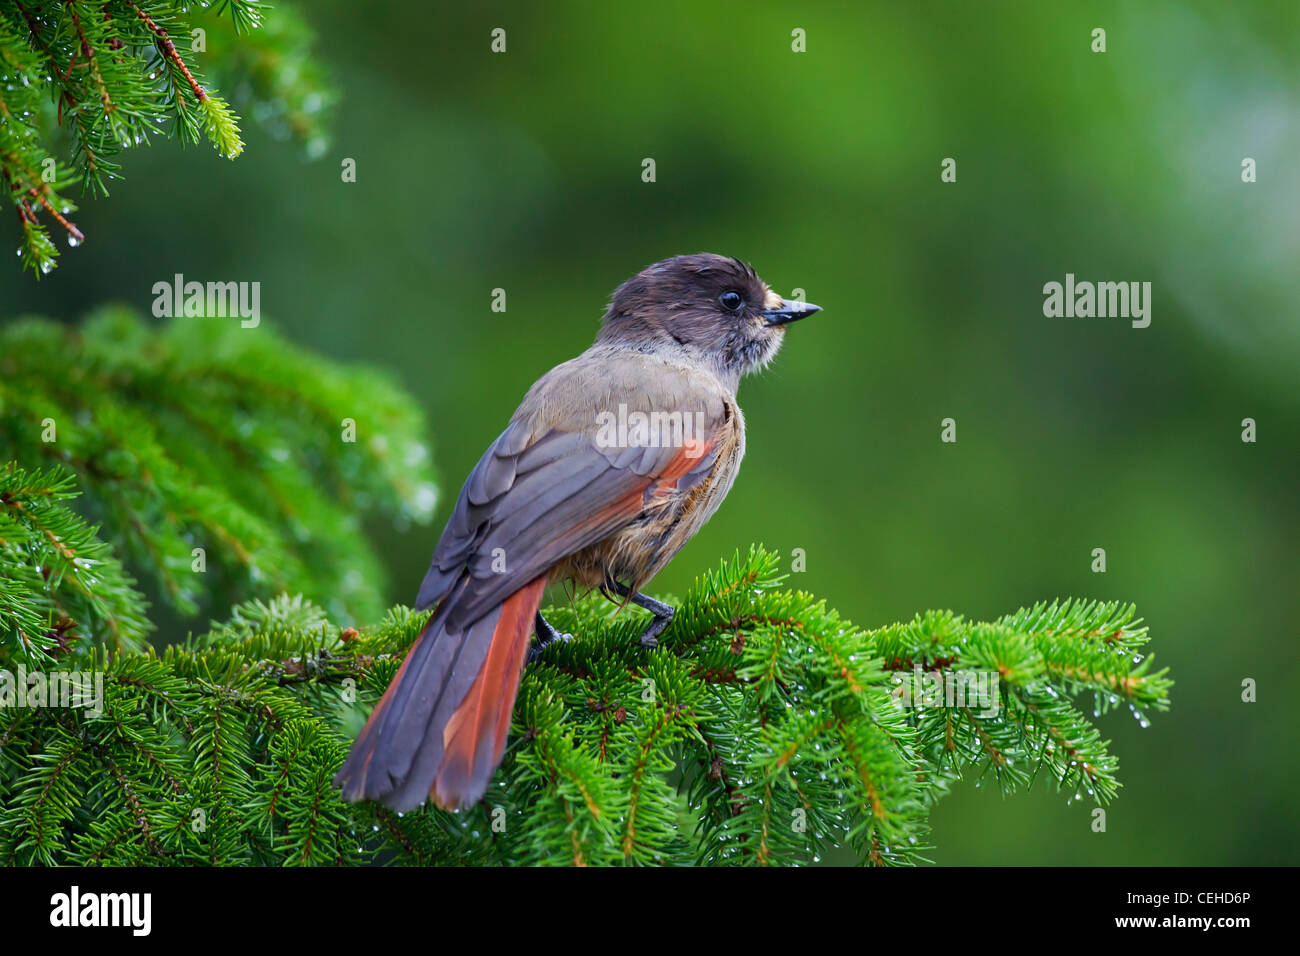 Siberian Jay (Perisoreus infaustus) perched in spruce tree, Sweden - Stock Image